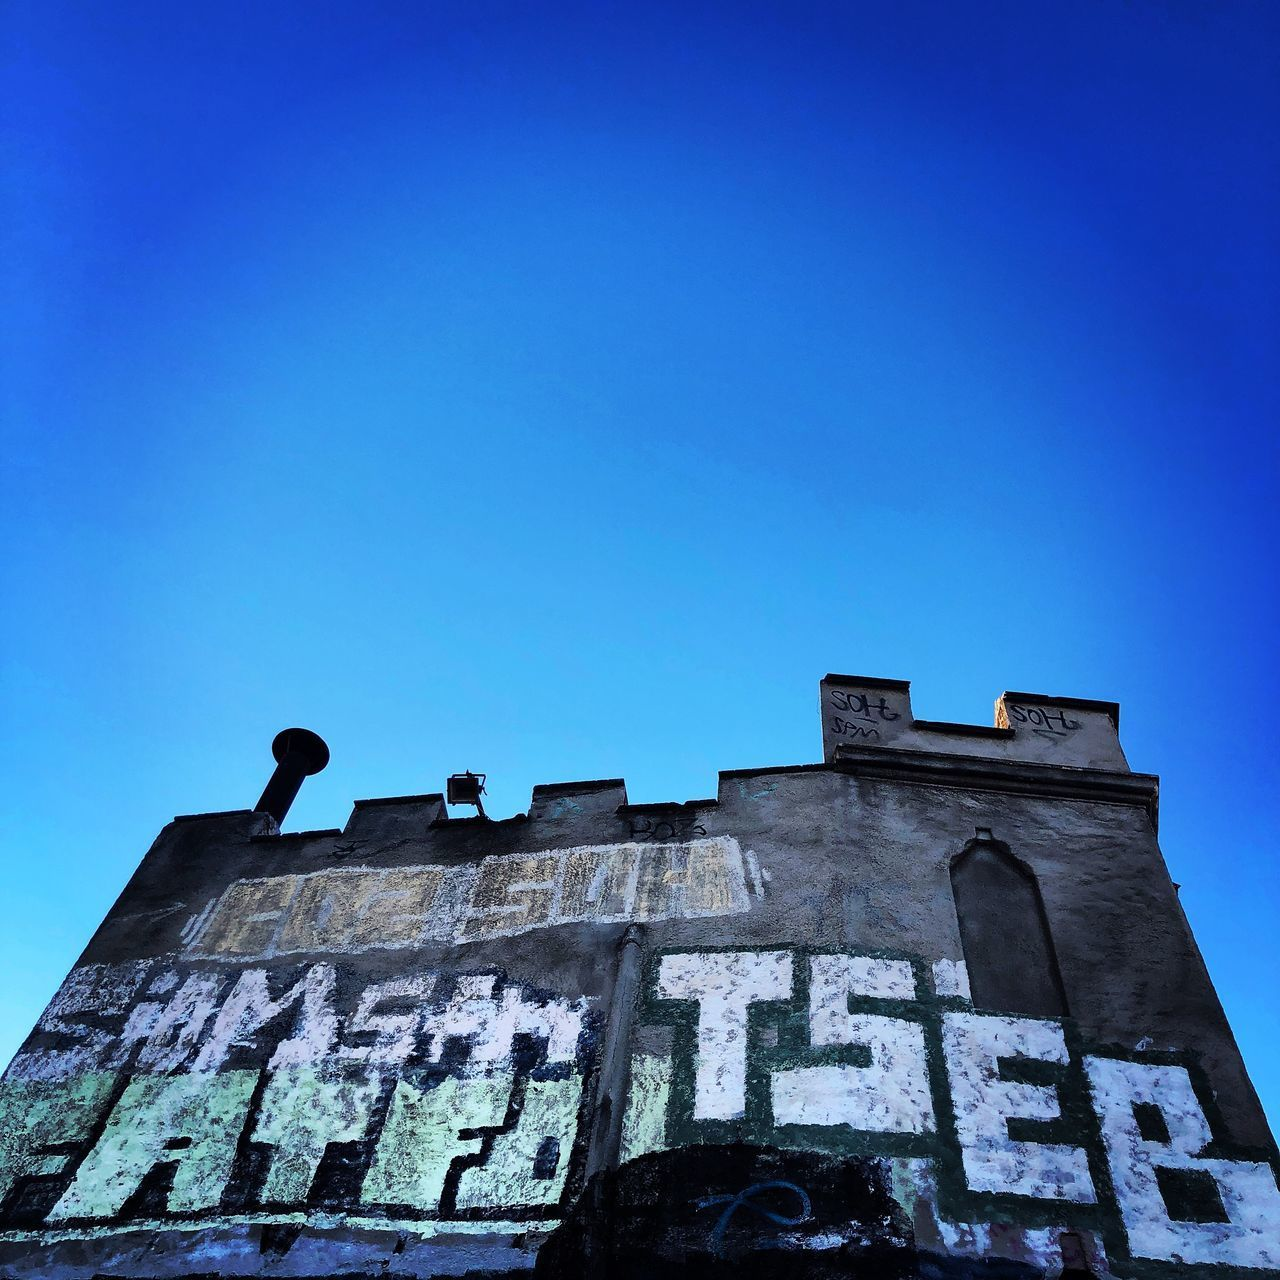 sky, low angle view, building exterior, clear sky, architecture, built structure, blue, copy space, nature, building, day, no people, history, old, the past, outdoors, residential district, abandoned, run-down, wall - building feature